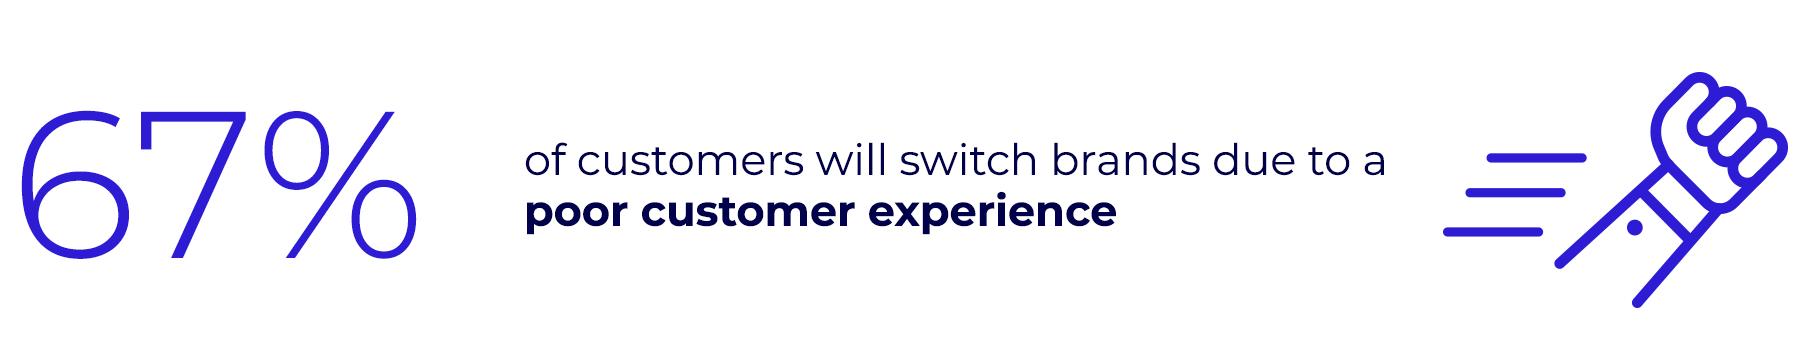 67% of customers will switch brands due to a poor customer experience.